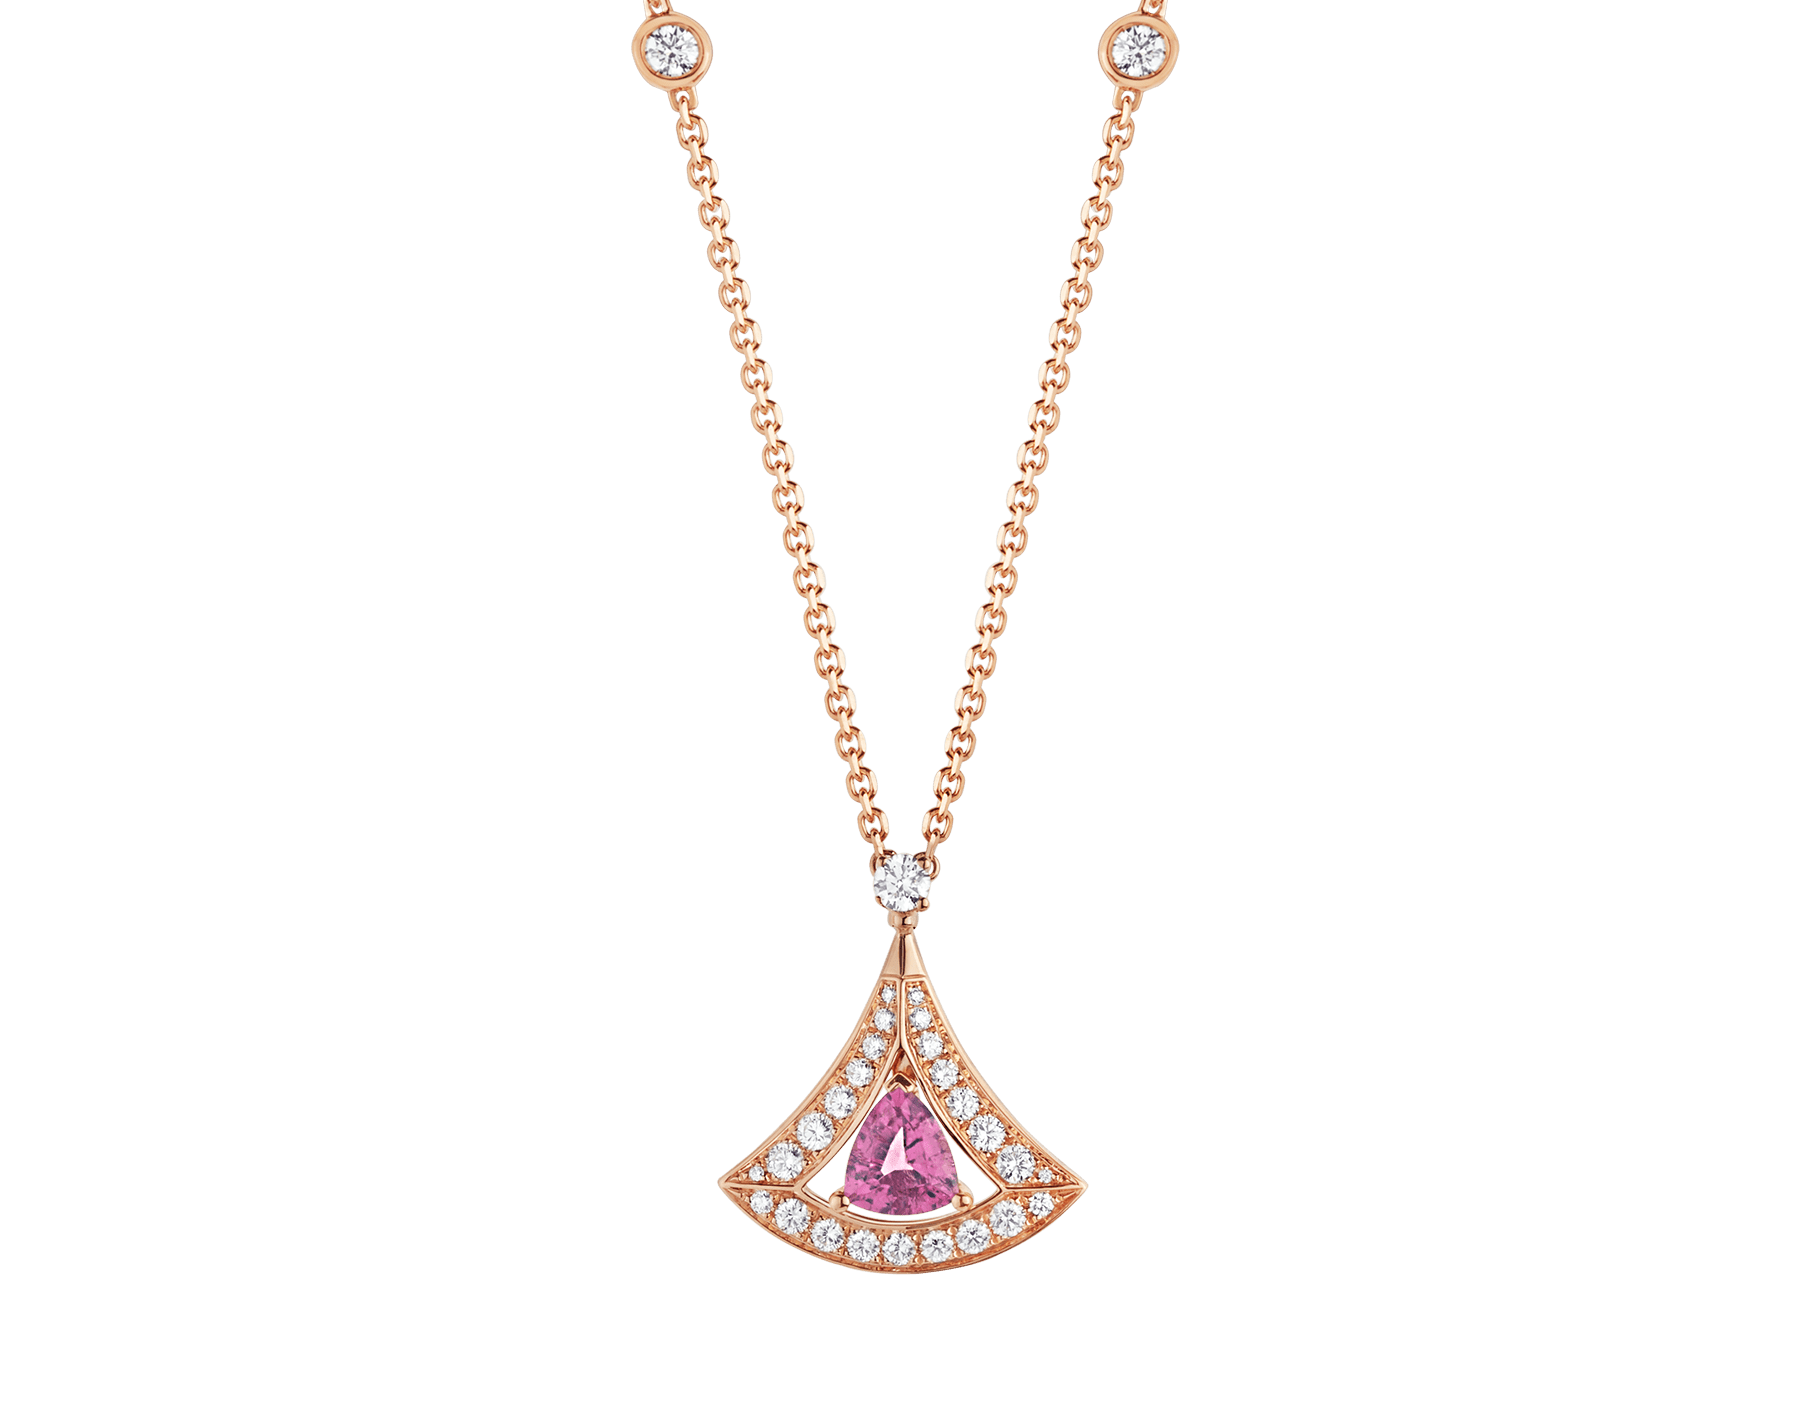 DIVAS' DREAM openwork necklace with 18 kt rose gold chain set with diamonds and 18 kt rose gold pendant with a pink tourmaline and set with pavé diamonds. 354366 image 1